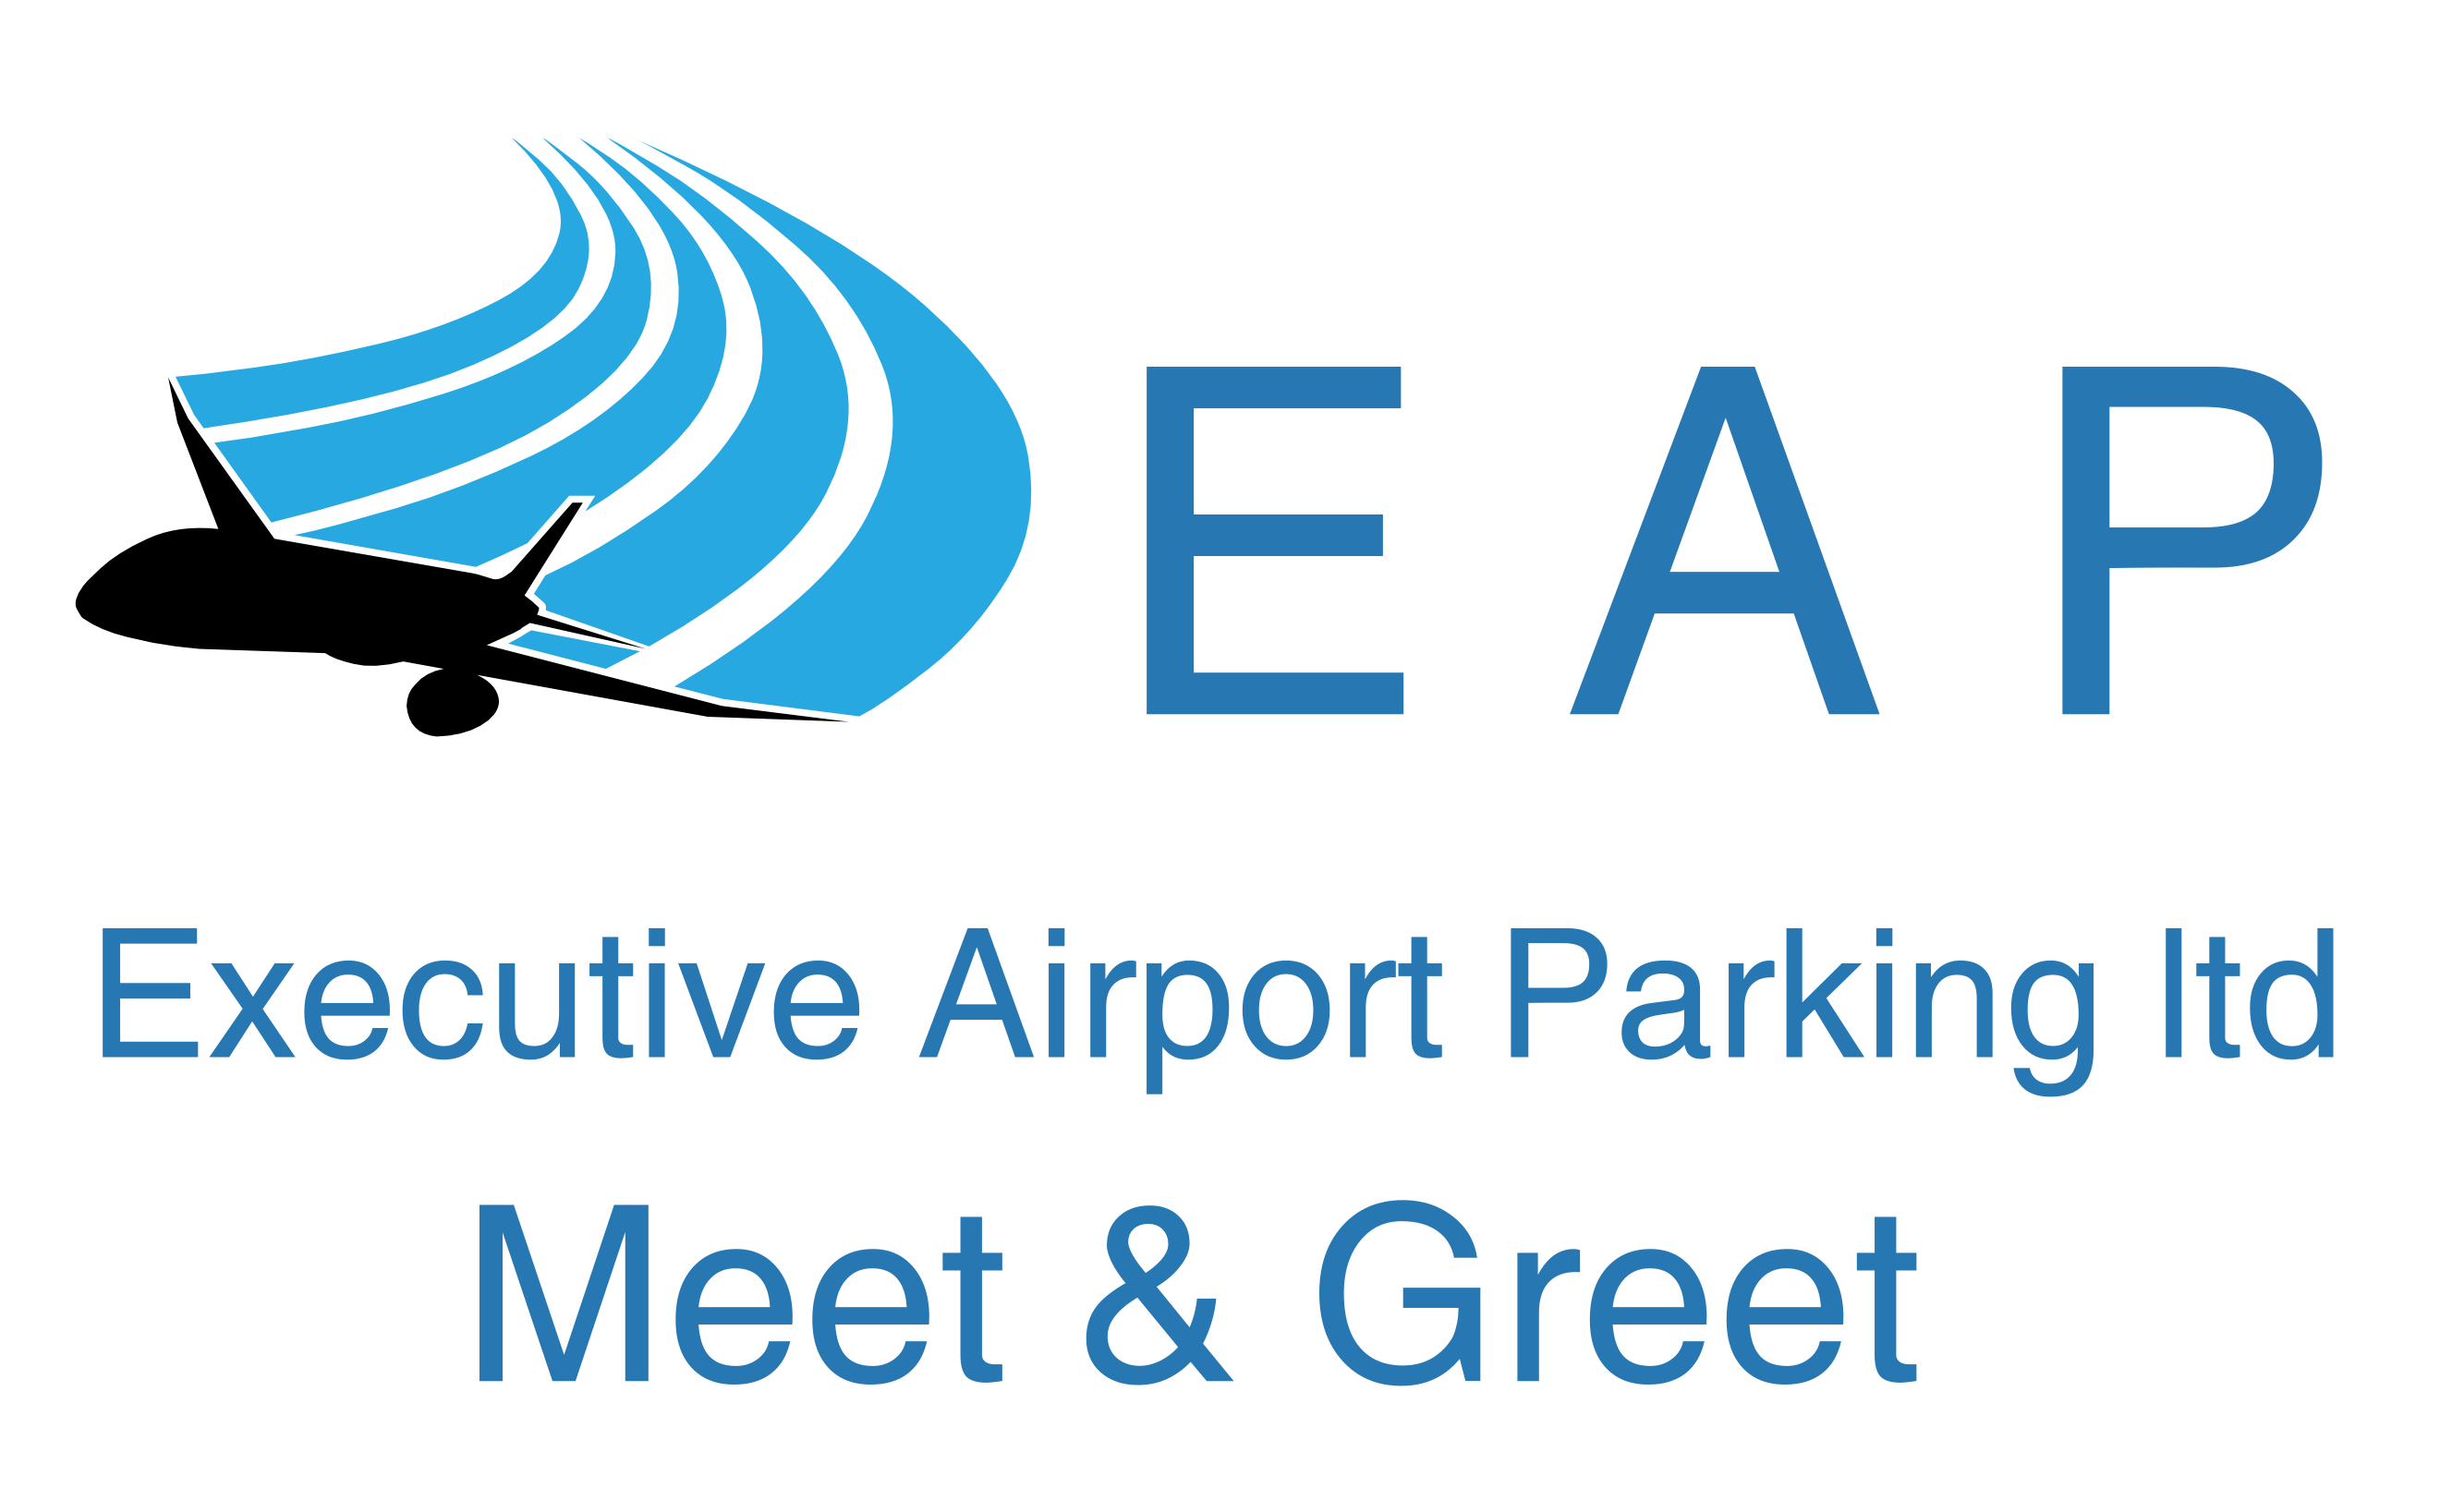 Leeds bradford airport hotels trusted travel airport parking just booked m4hsunfo